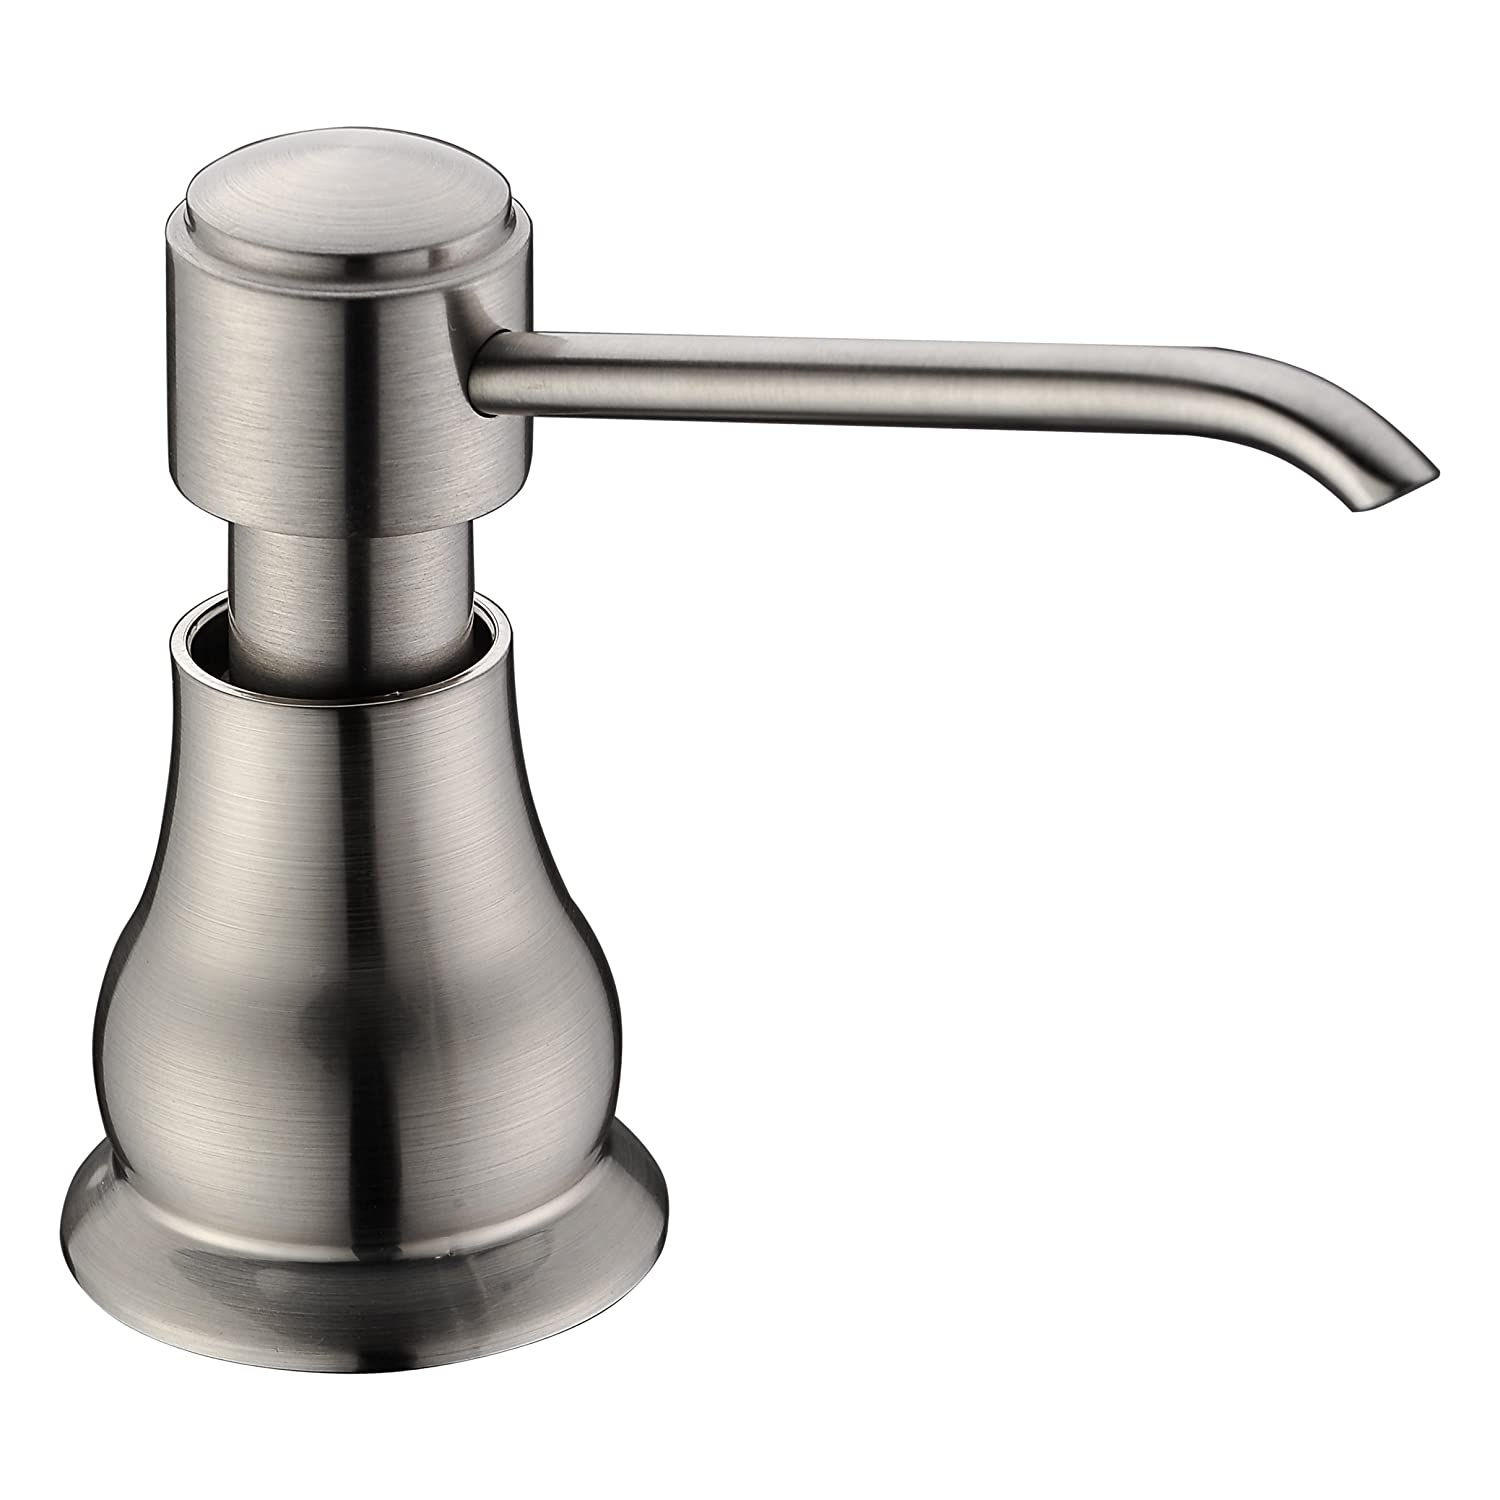 Brass Sink Soap Dispenser Pump Brushed Nickel Delle Rosa Brass Head